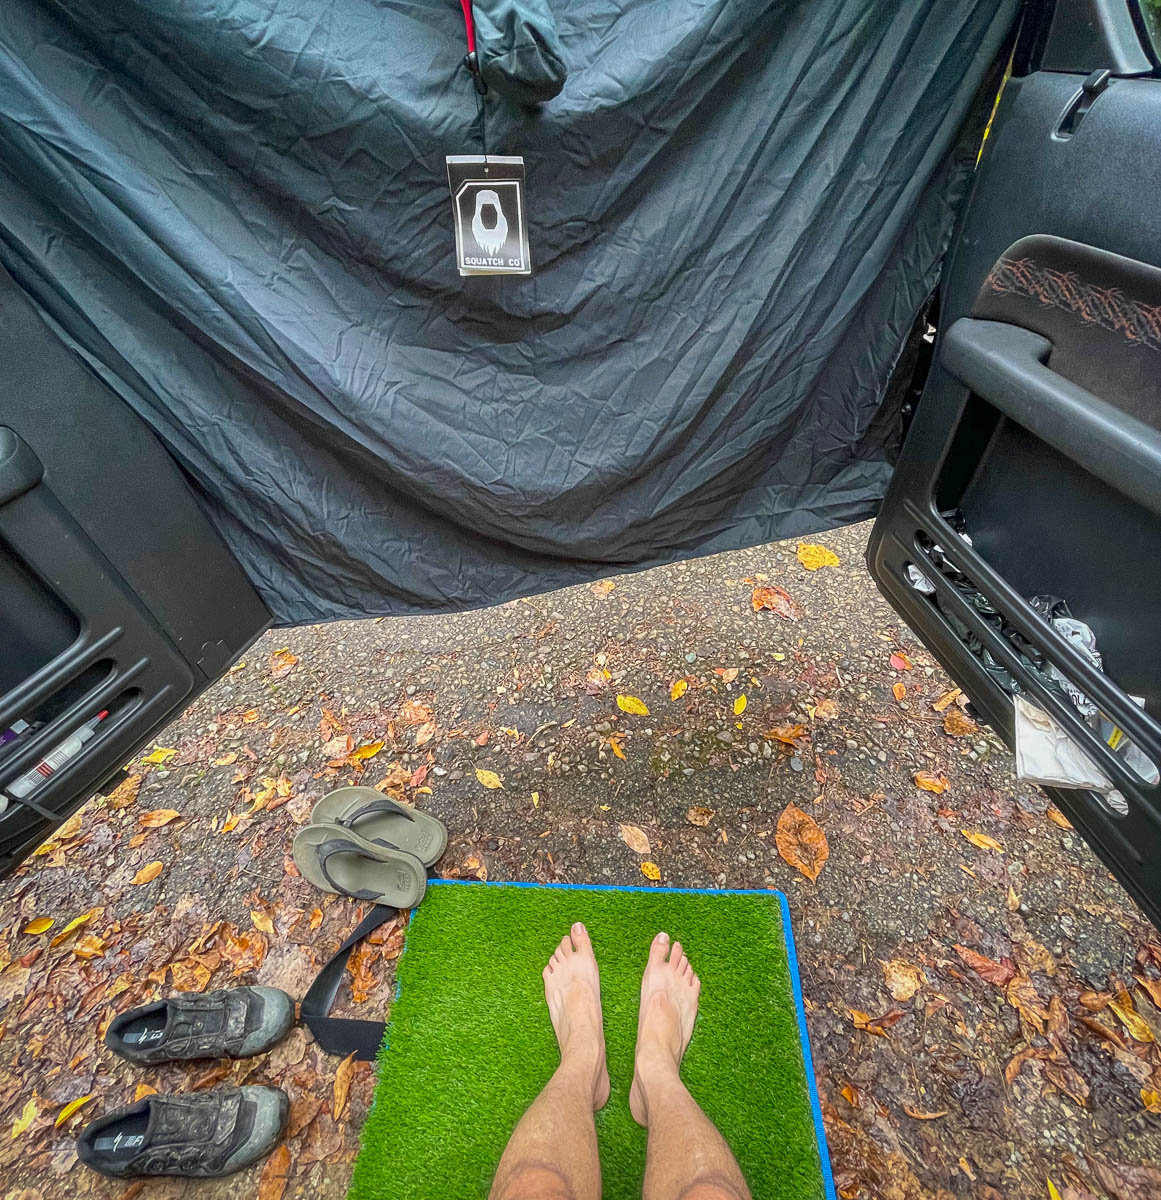 Surf Grass Mats are the must-have changing accessory you didn't know you needed thumbnail